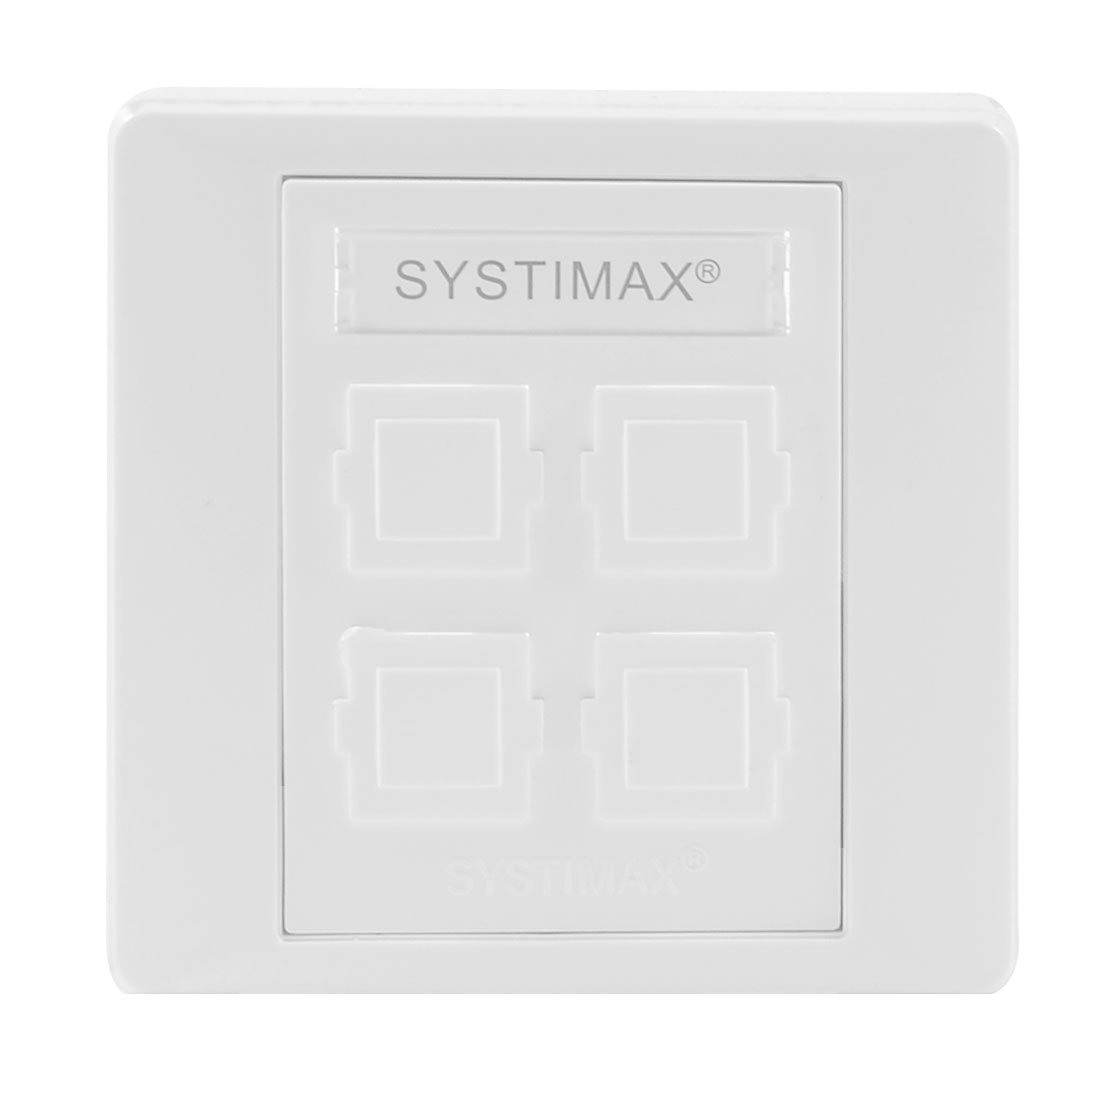 86mm 4 Port Network Wall Plate Faceplate White for Home Office Sourcingmap Amico